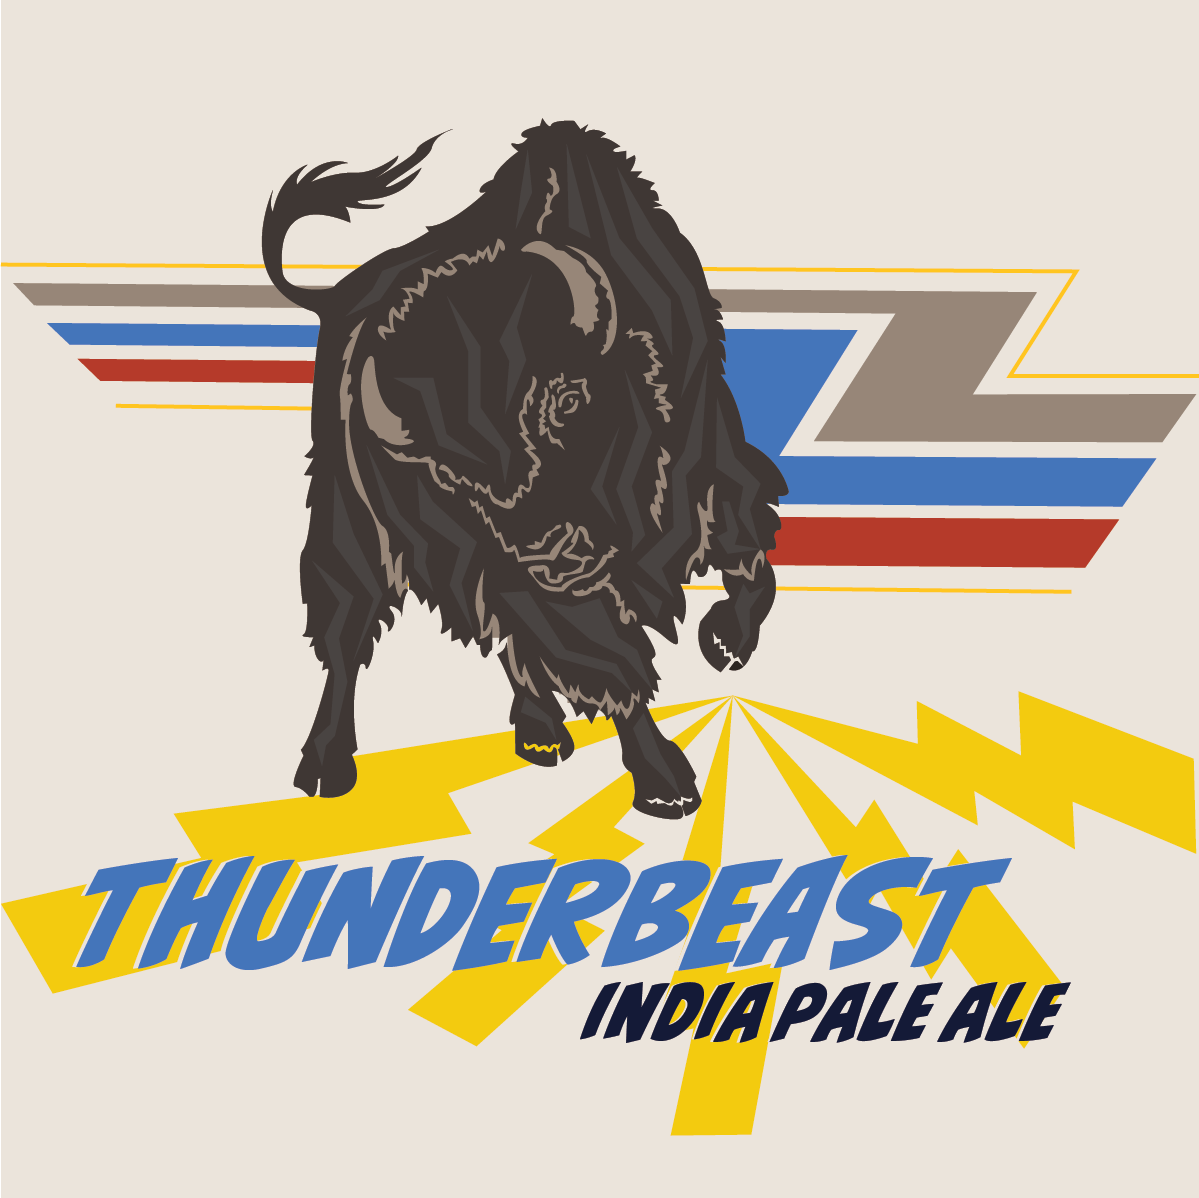 Thunderbeast IPA